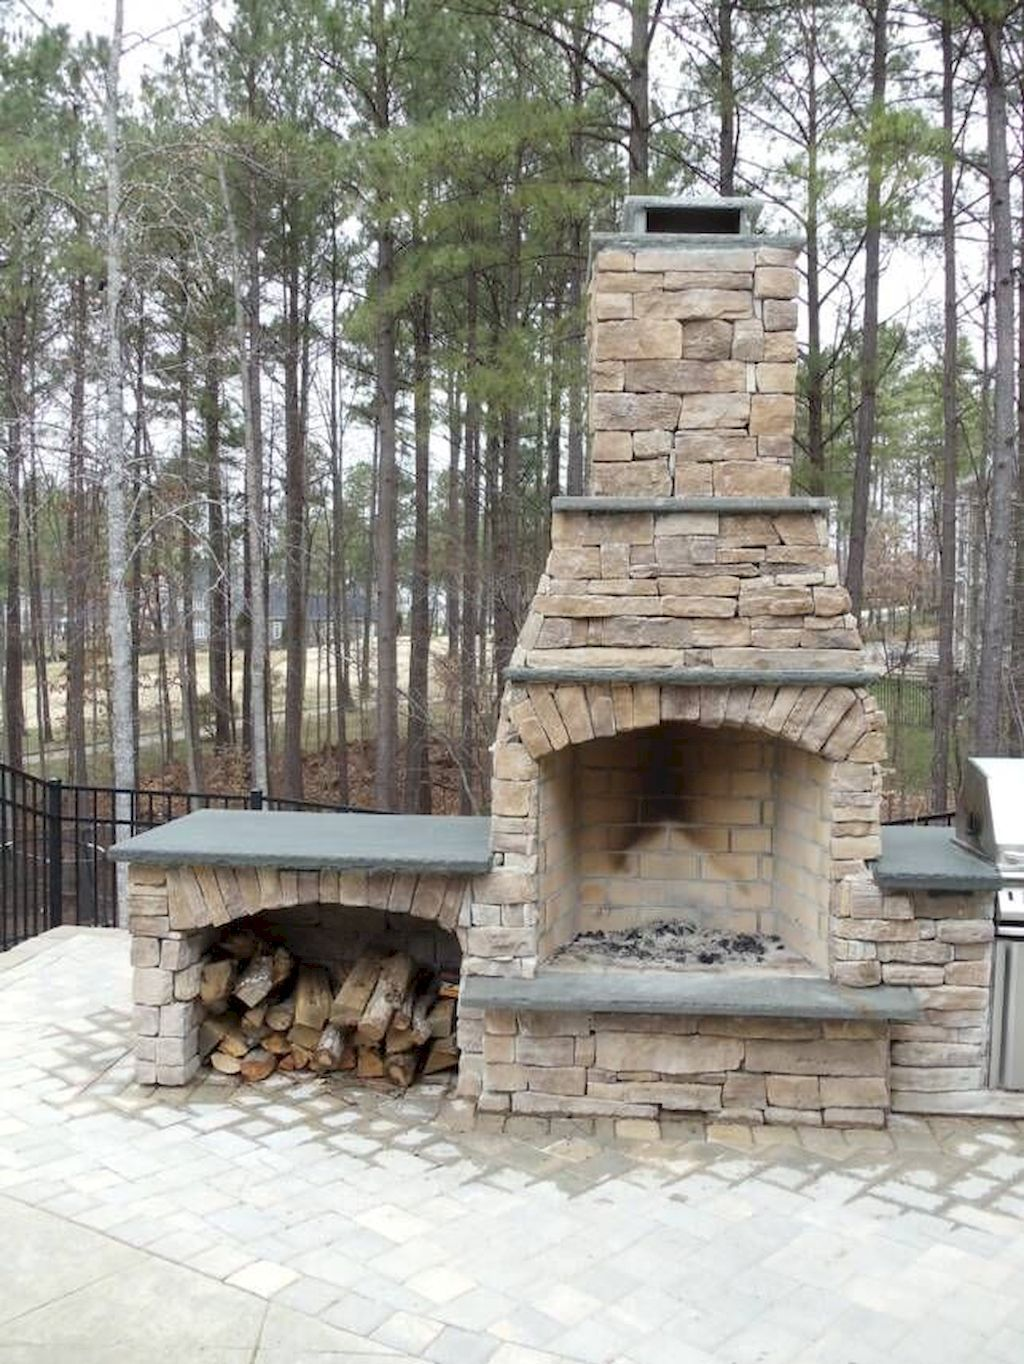 Oneonroom Com Nbspthis Website Is For Sale Nbsponeonroom Resources And Information Outdoor Fireplace Designs Outdoor Fireplace Plans Outdoor Stone Fireplaces